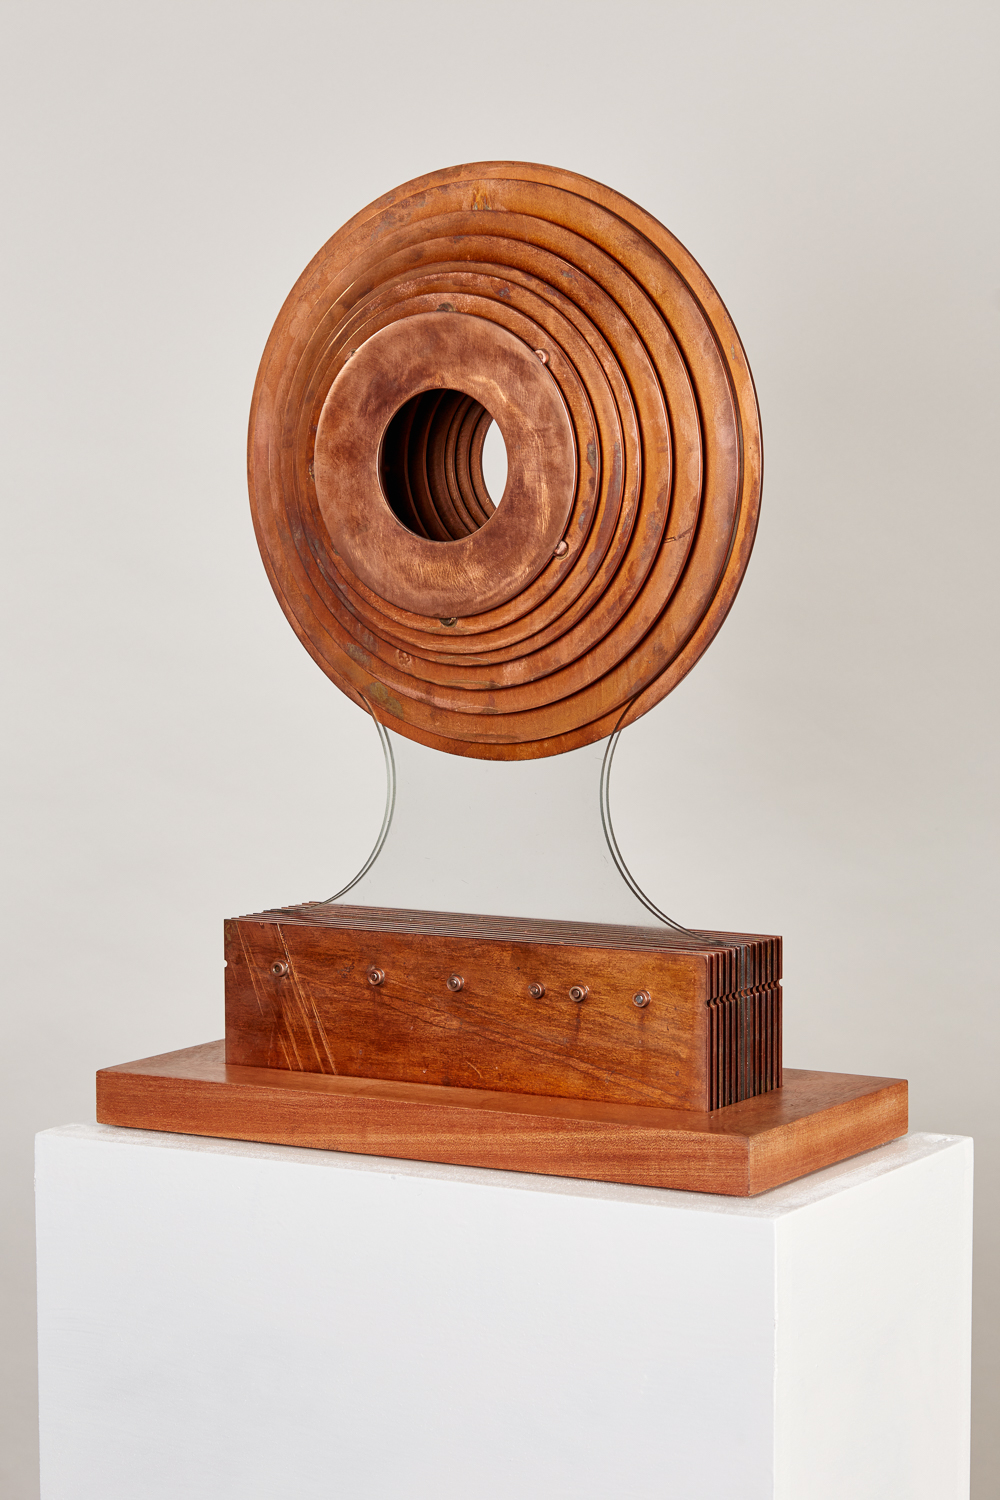 2016 Octave Circle.  50cm x 30cm x 14cmCorten steel; copper plate; glass on Sapele plinth.jpg